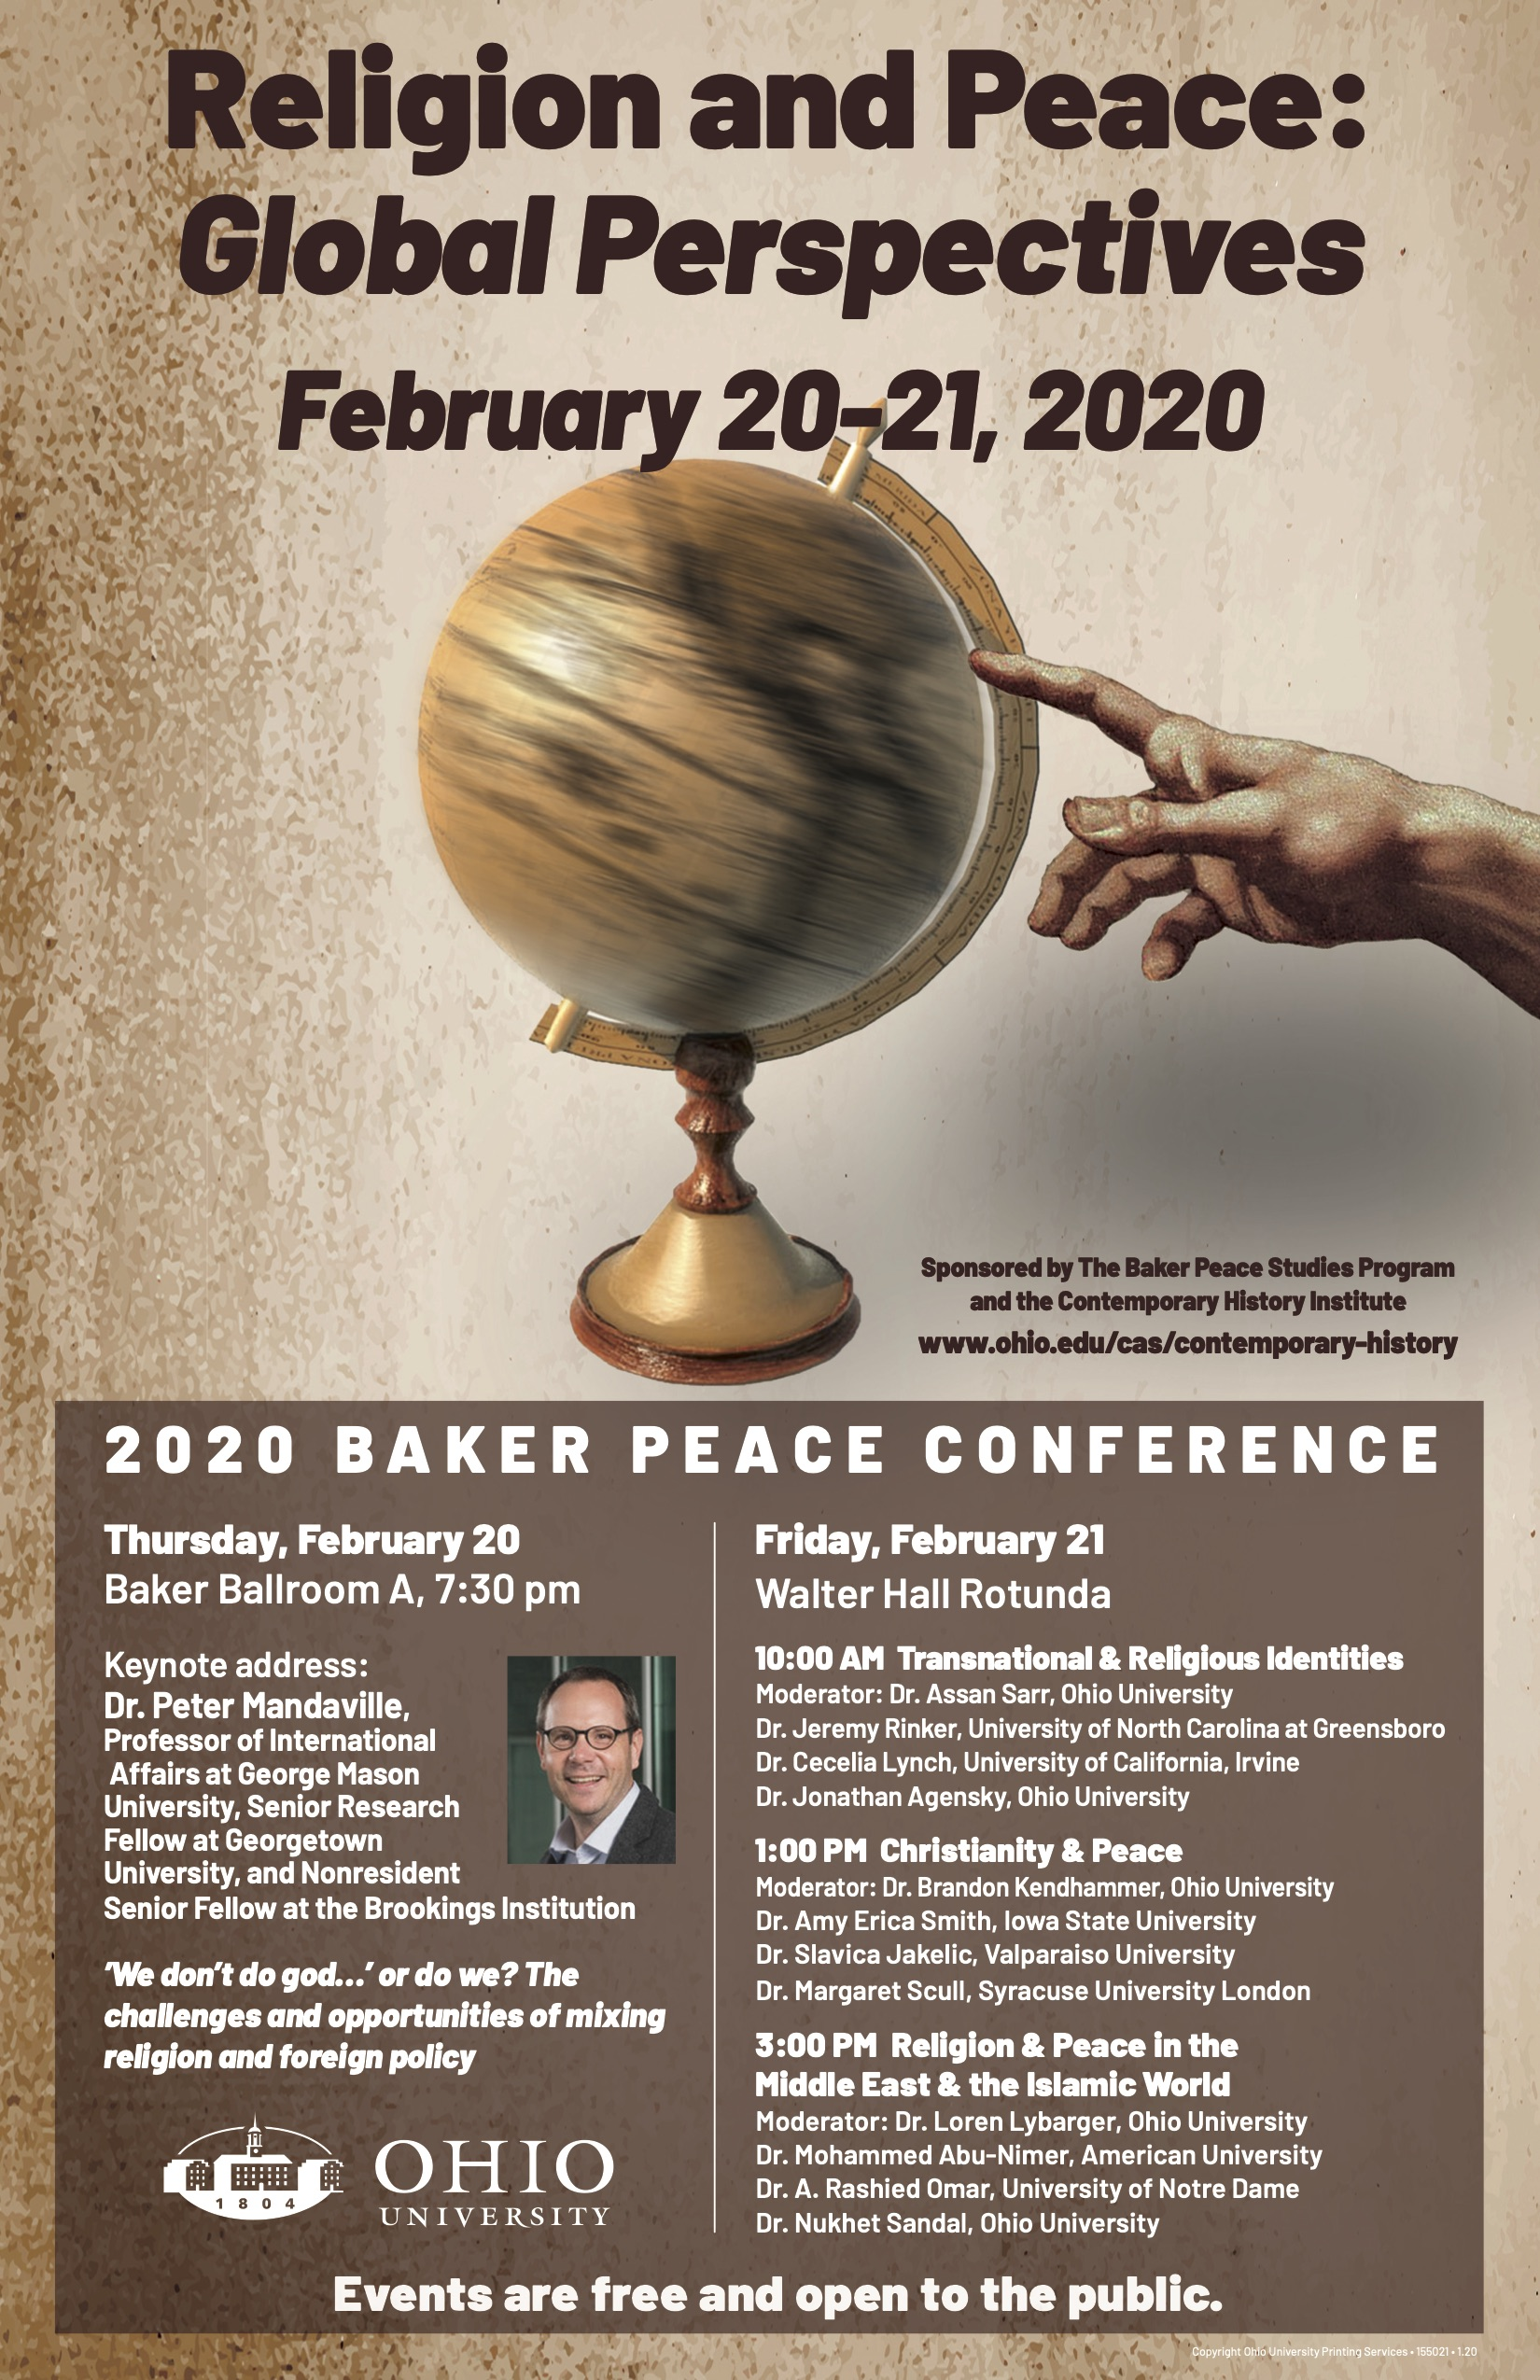 Religion and Peace: Global Perspectives flier